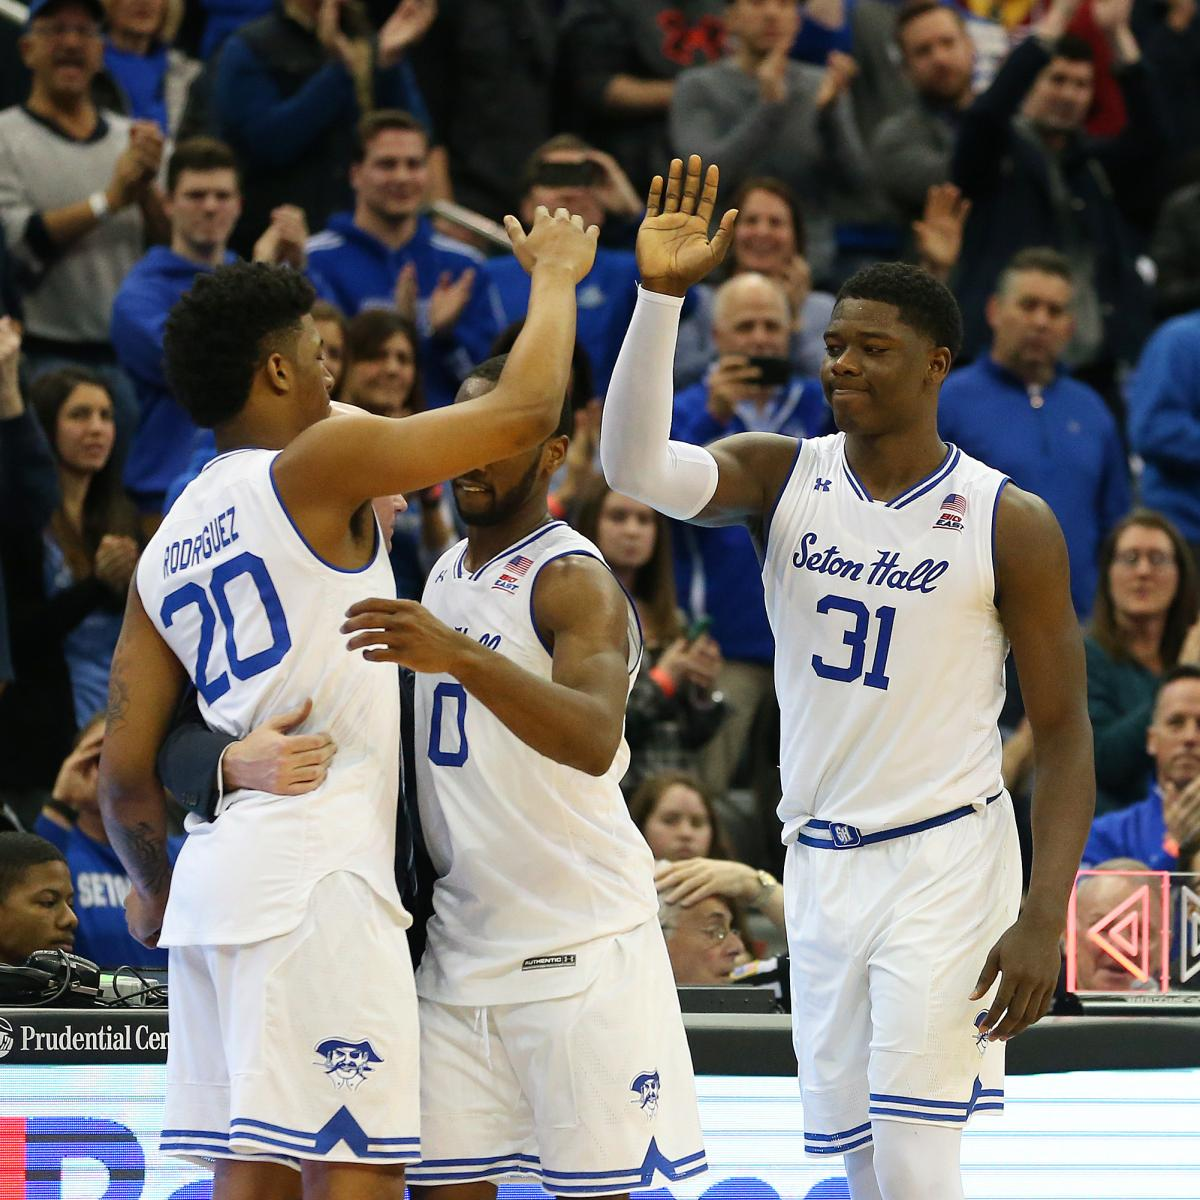 N.C. State Wolfpack vs. Seton Hall Pirates Odds, March Madness Betting Pick